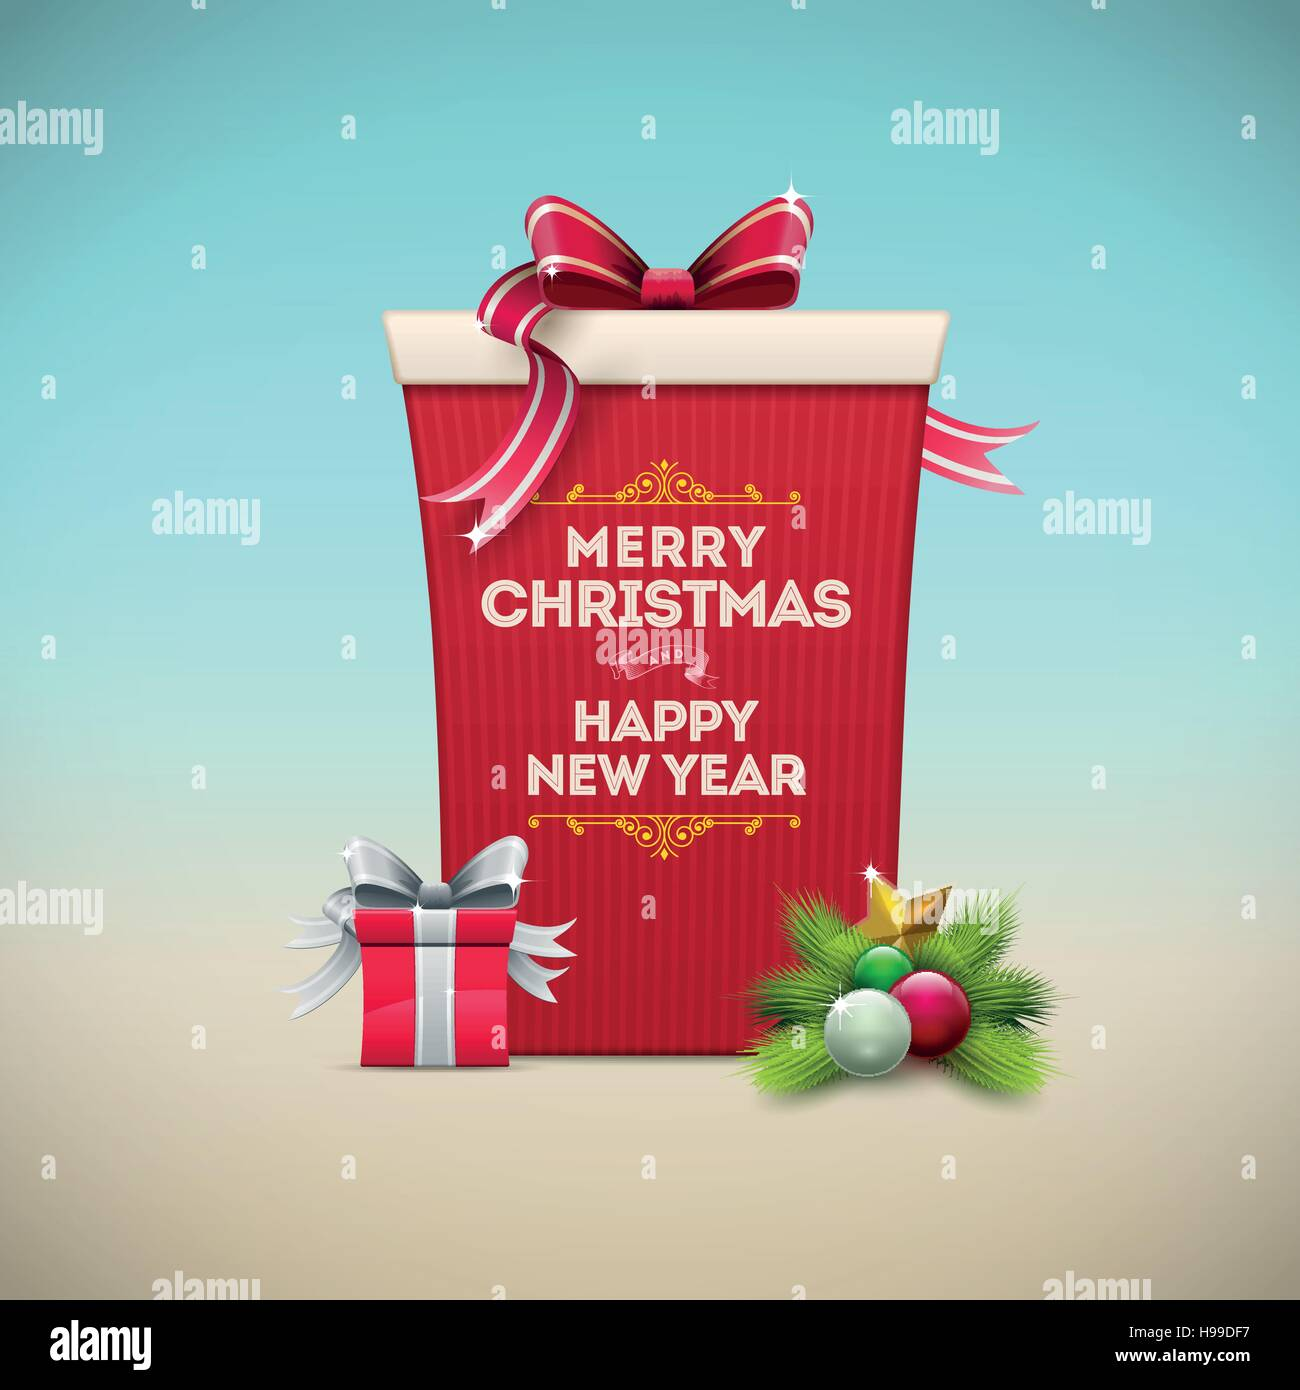 Christmas gift box message board. Merry Christmas and Happy New Year text on the box. Christmas vector illustration. - Stock Image